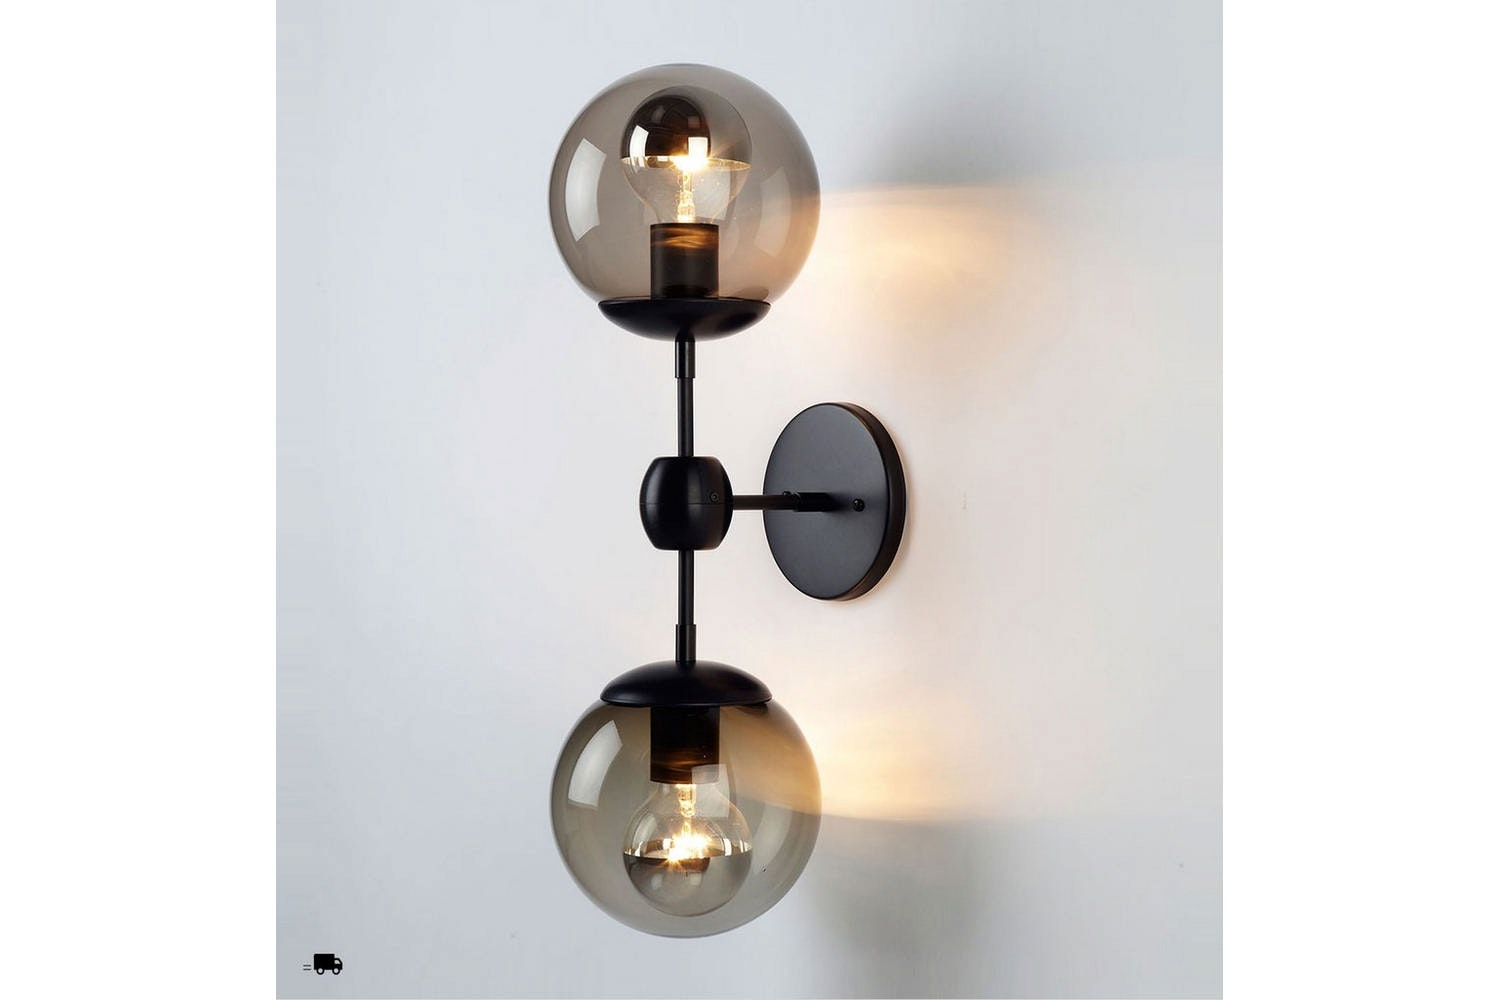 Modo Sconce - 2 Globes by Jason Miller for Roll & Hill